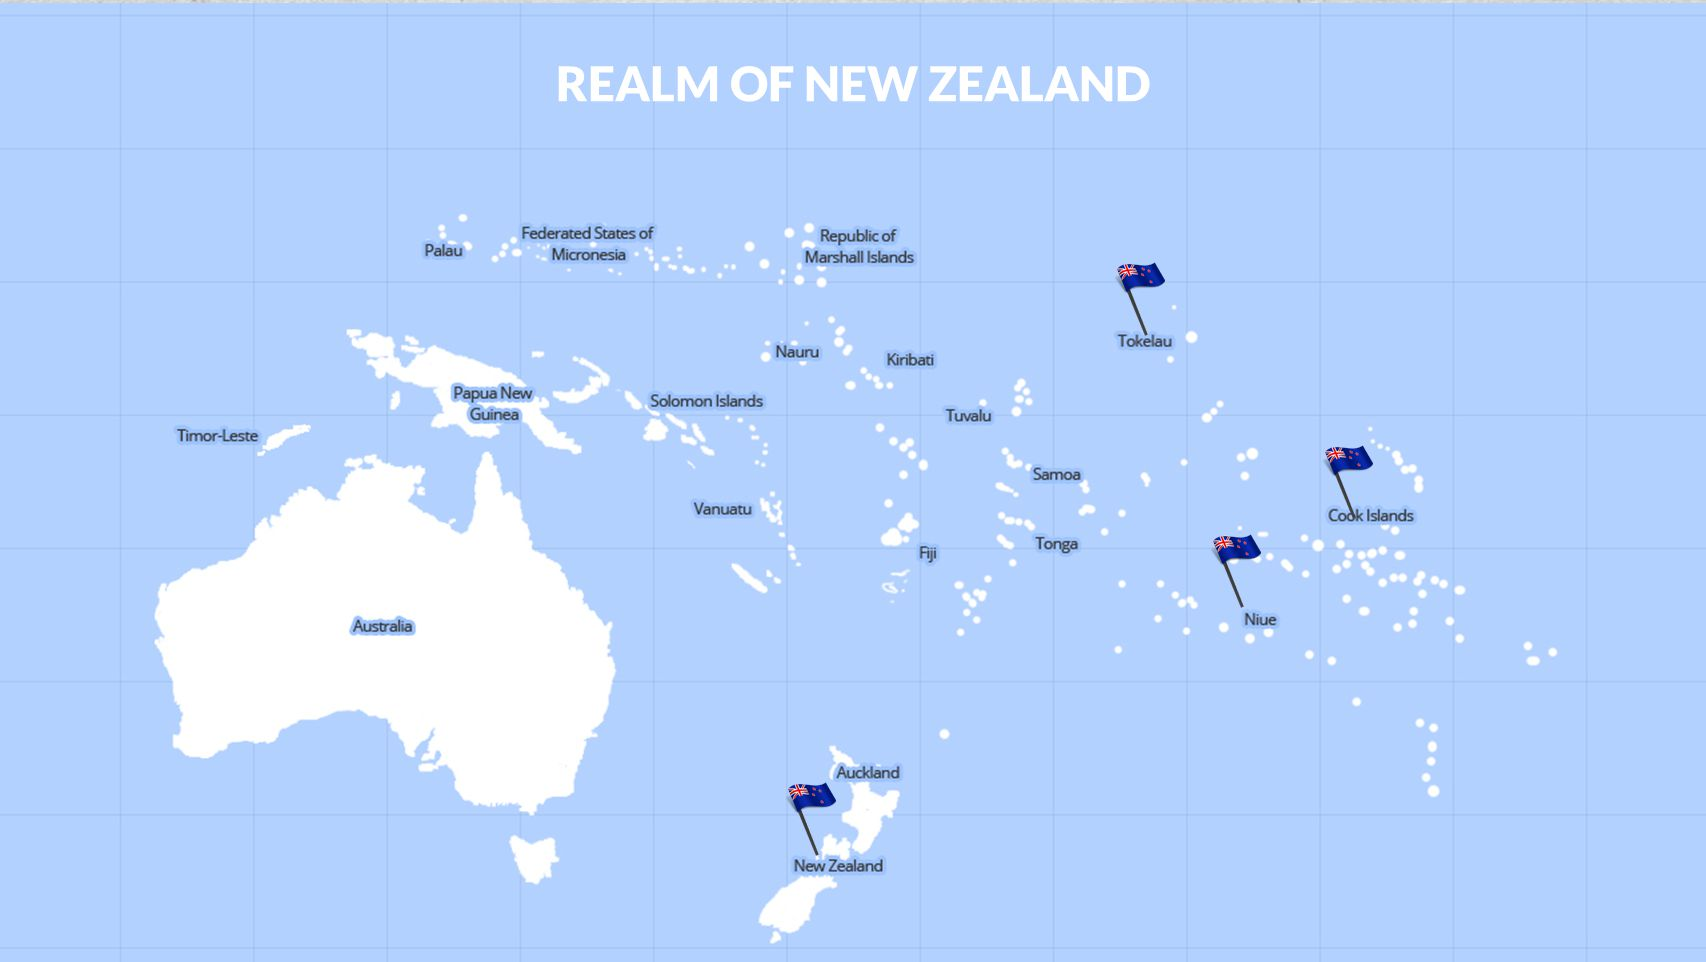 REALM OF NEW ZEALAND